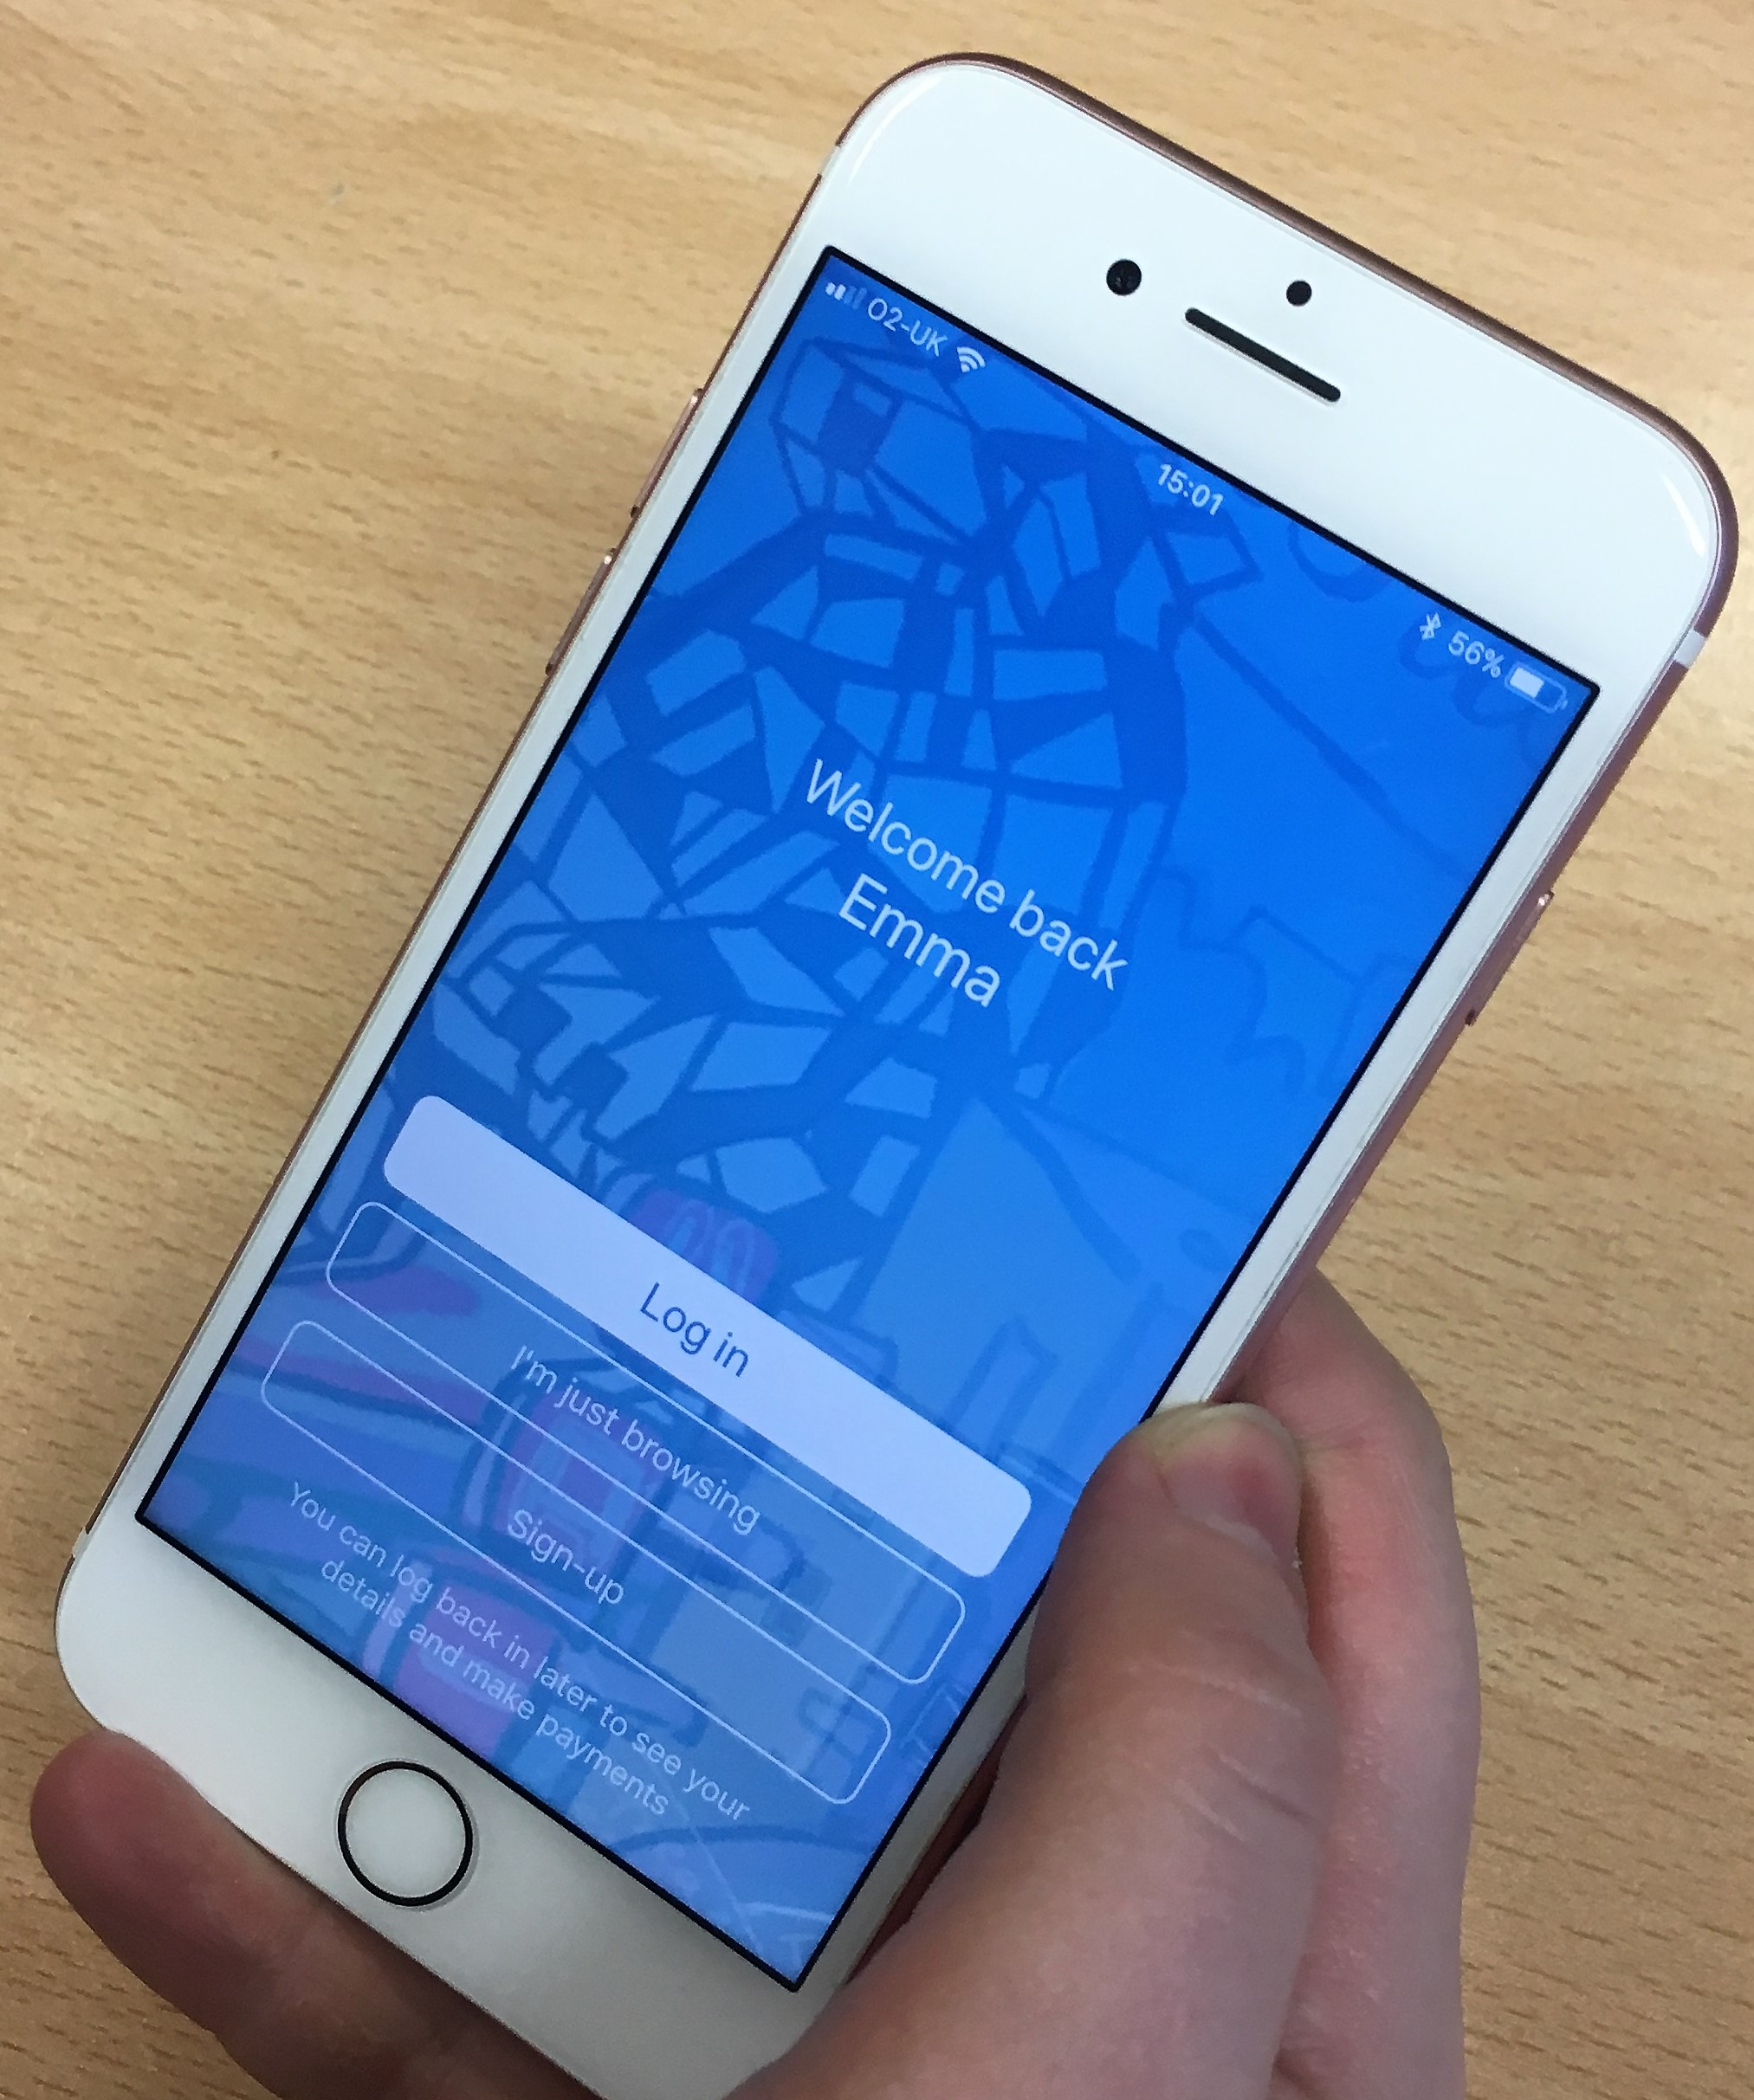 Bristol Pound announces app upgrade, simplifying the sign-up procedure -